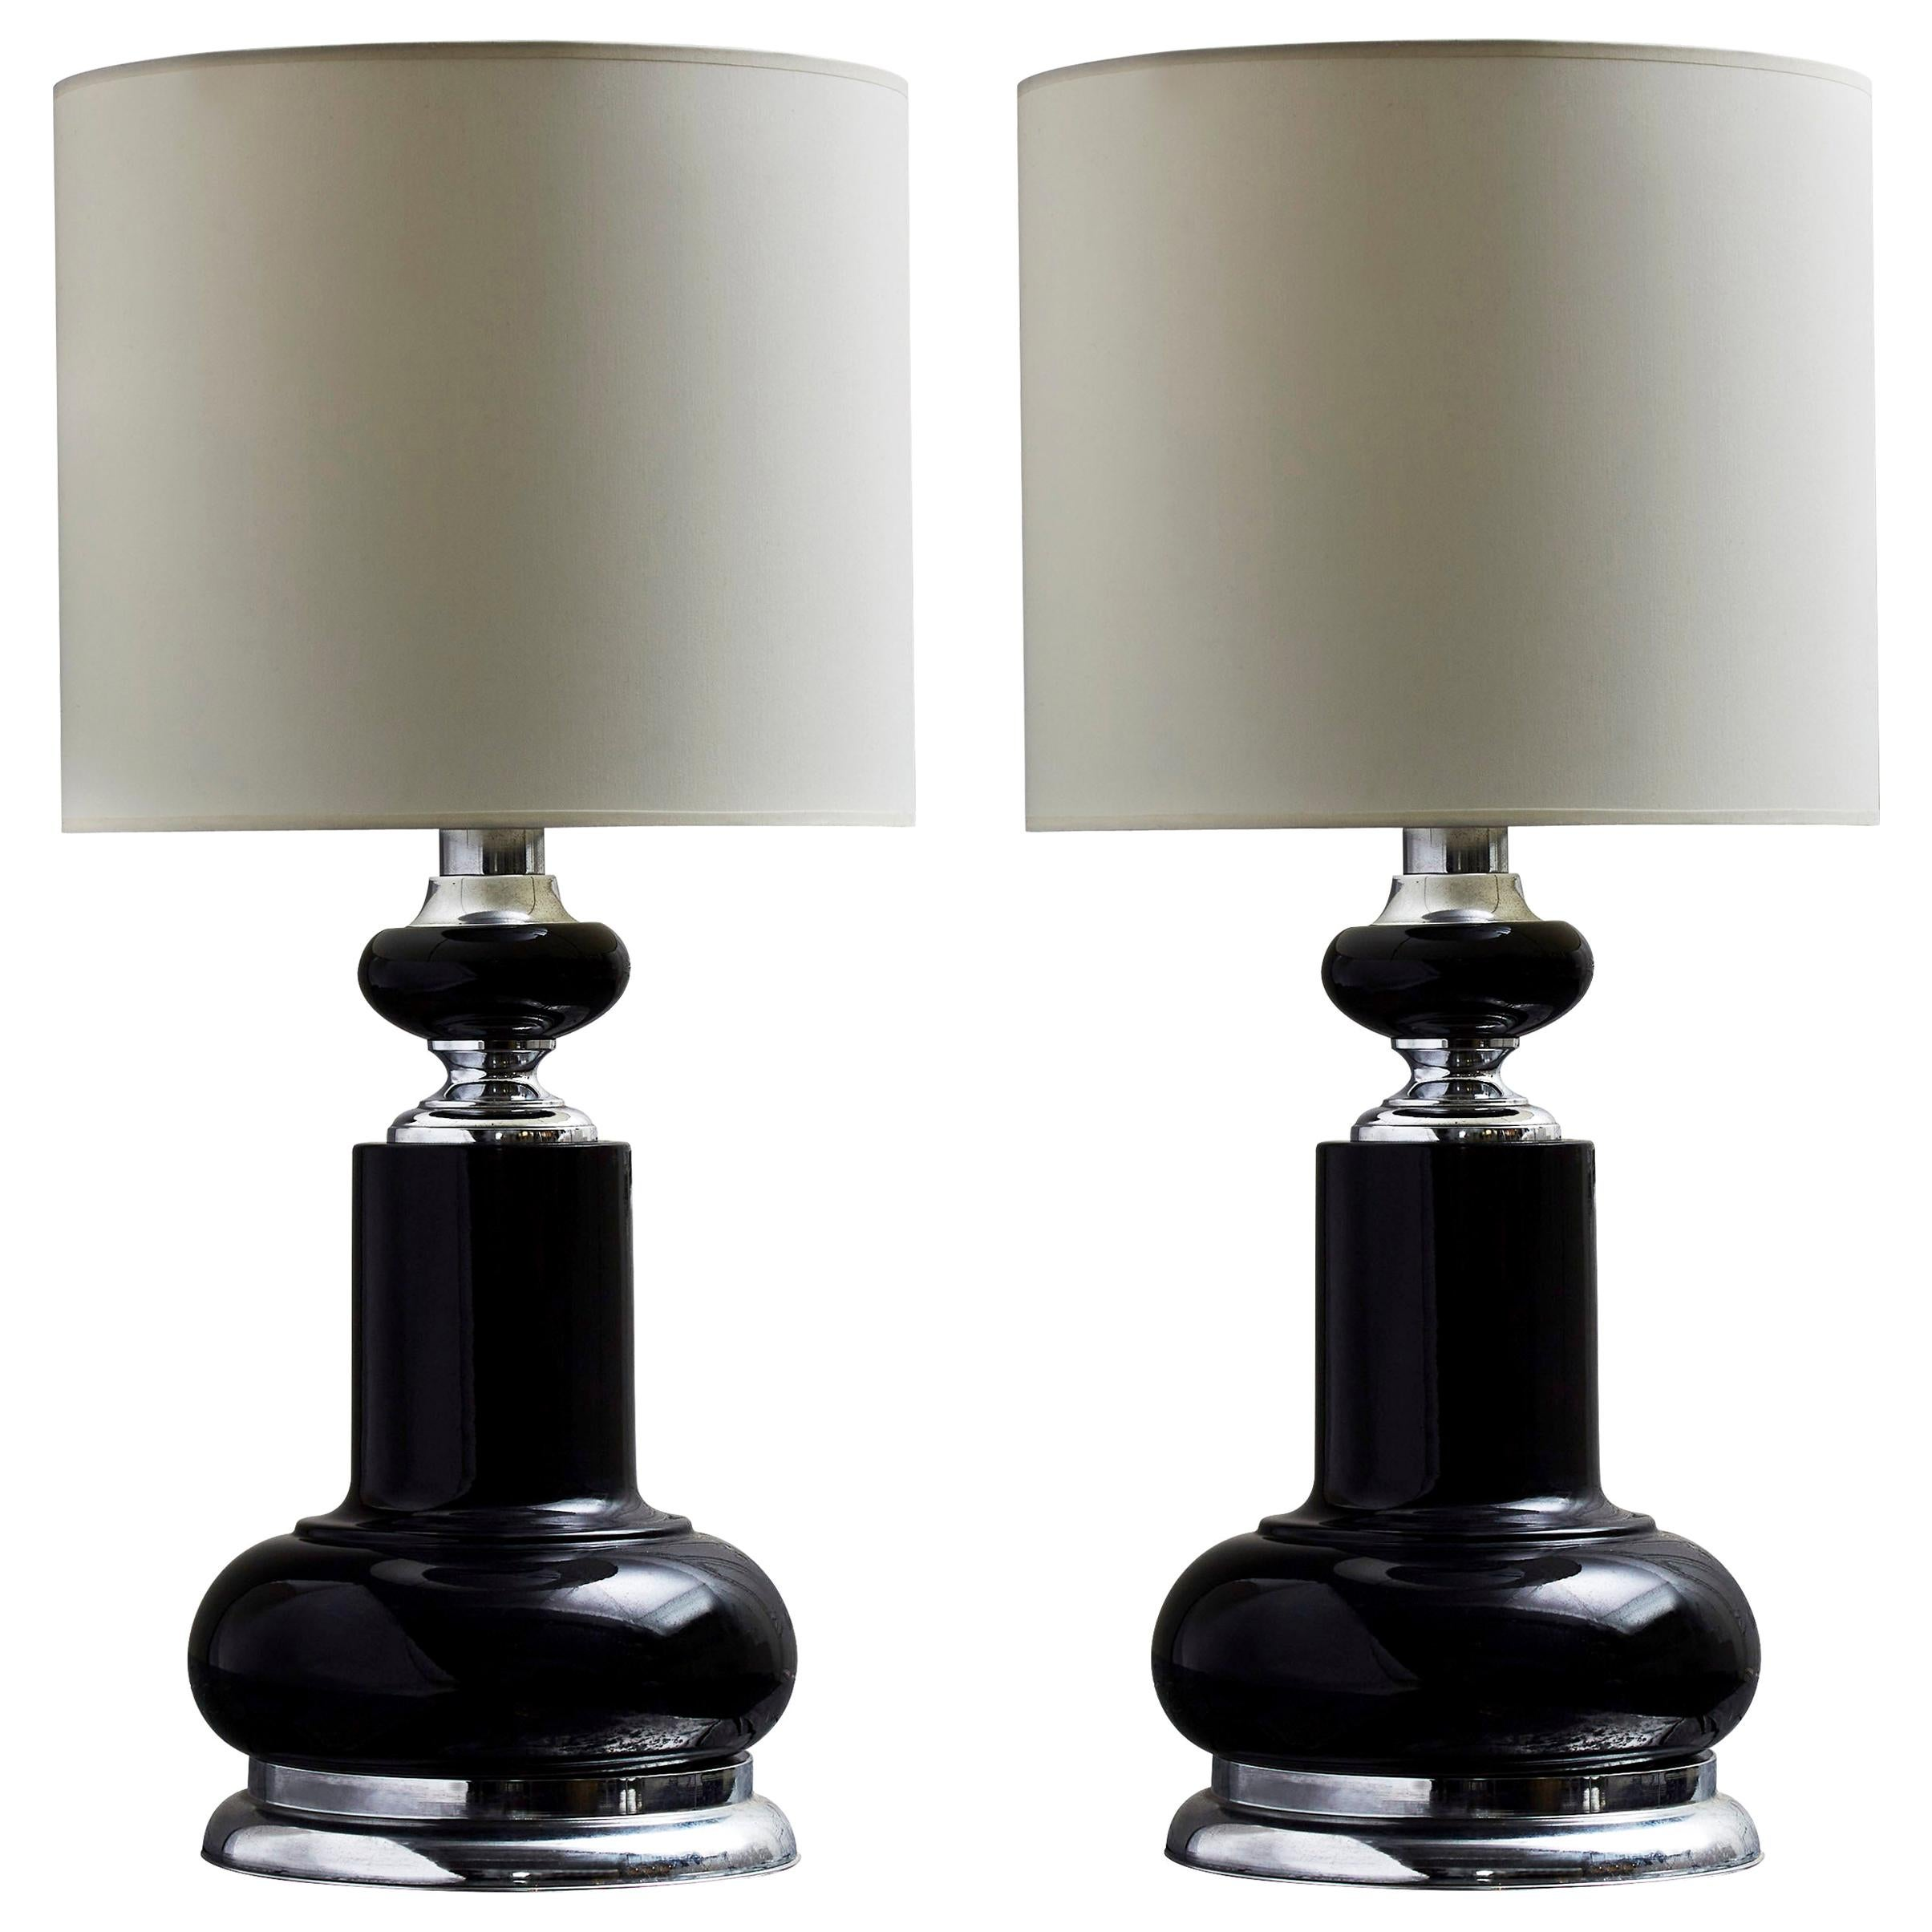 Pair of 1980s Black Table Lamps with Metallic Accents